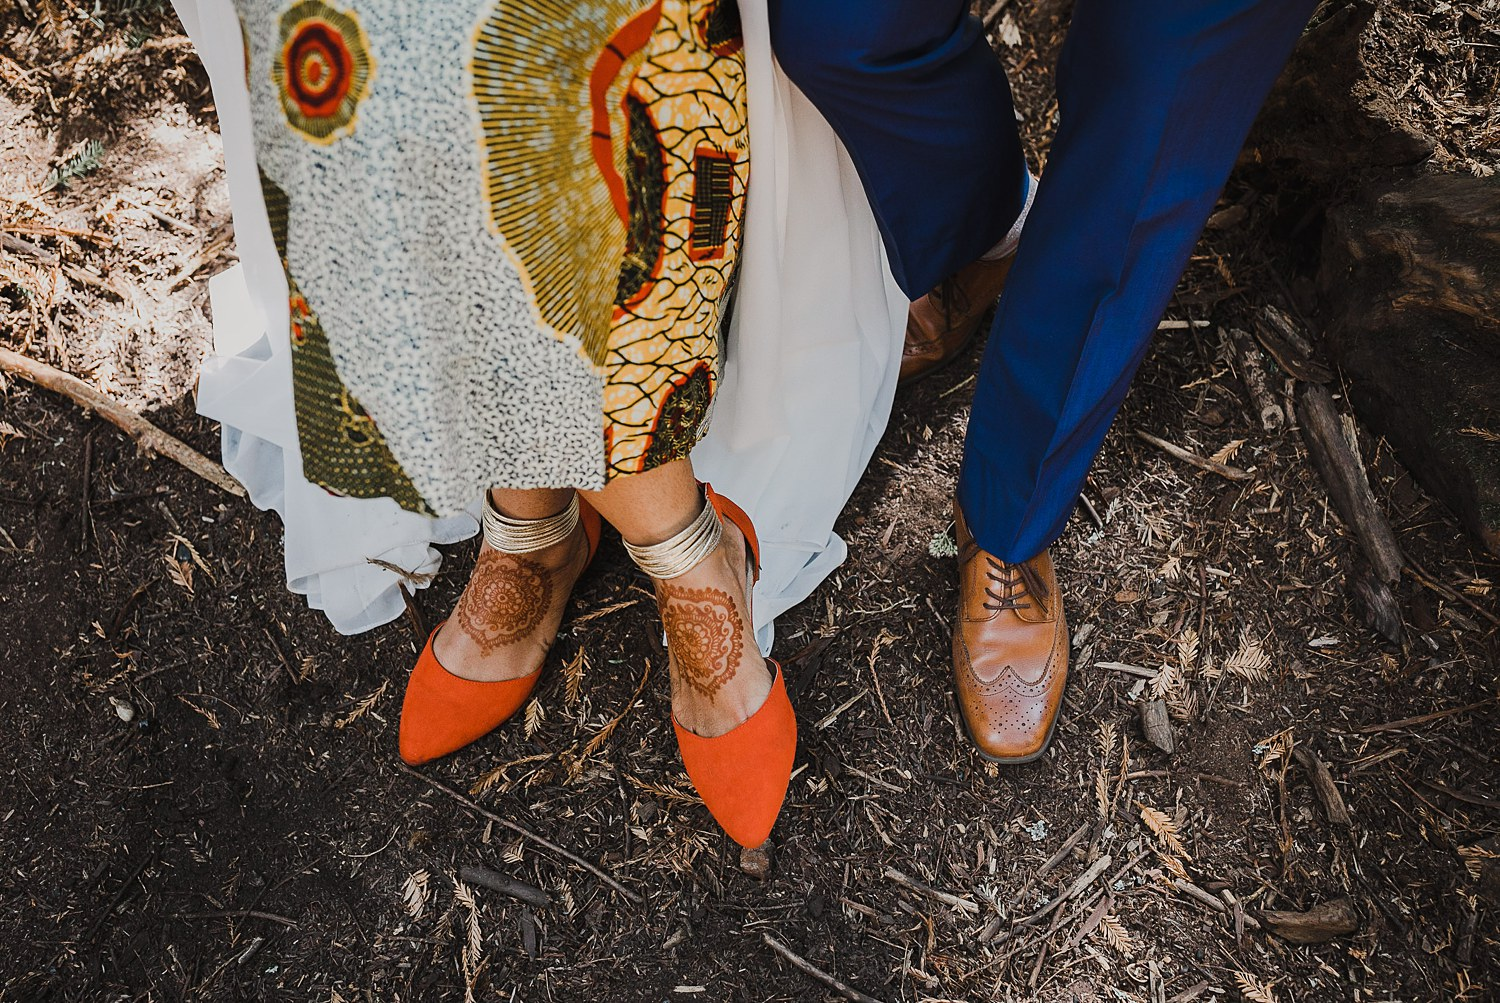 Couple shows off their wedding shoes on wedding day.